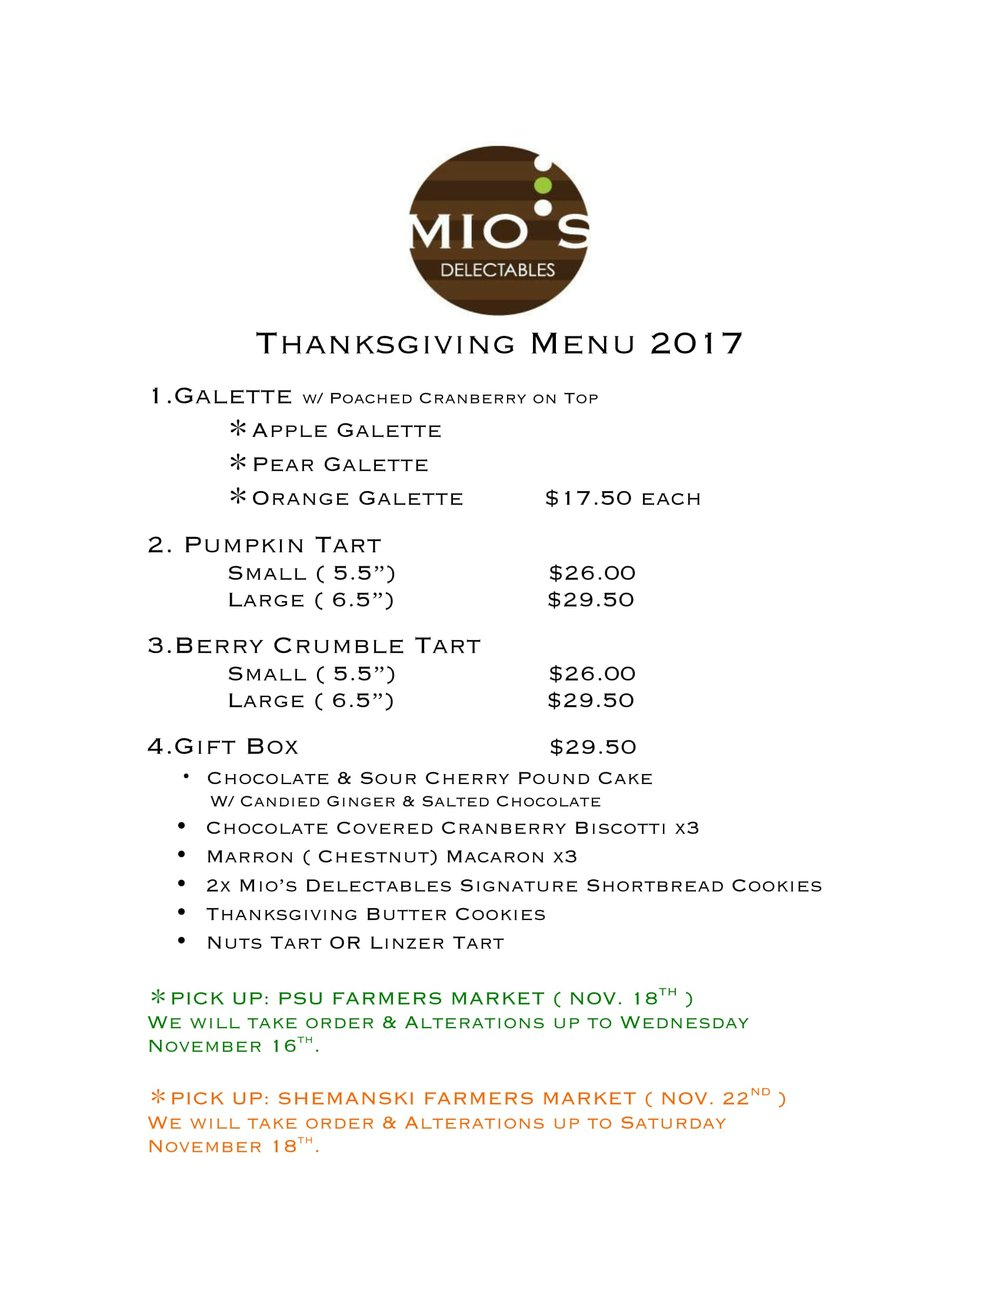 Mio's Delectables 2017 Thankgiving Menu-1.jpg